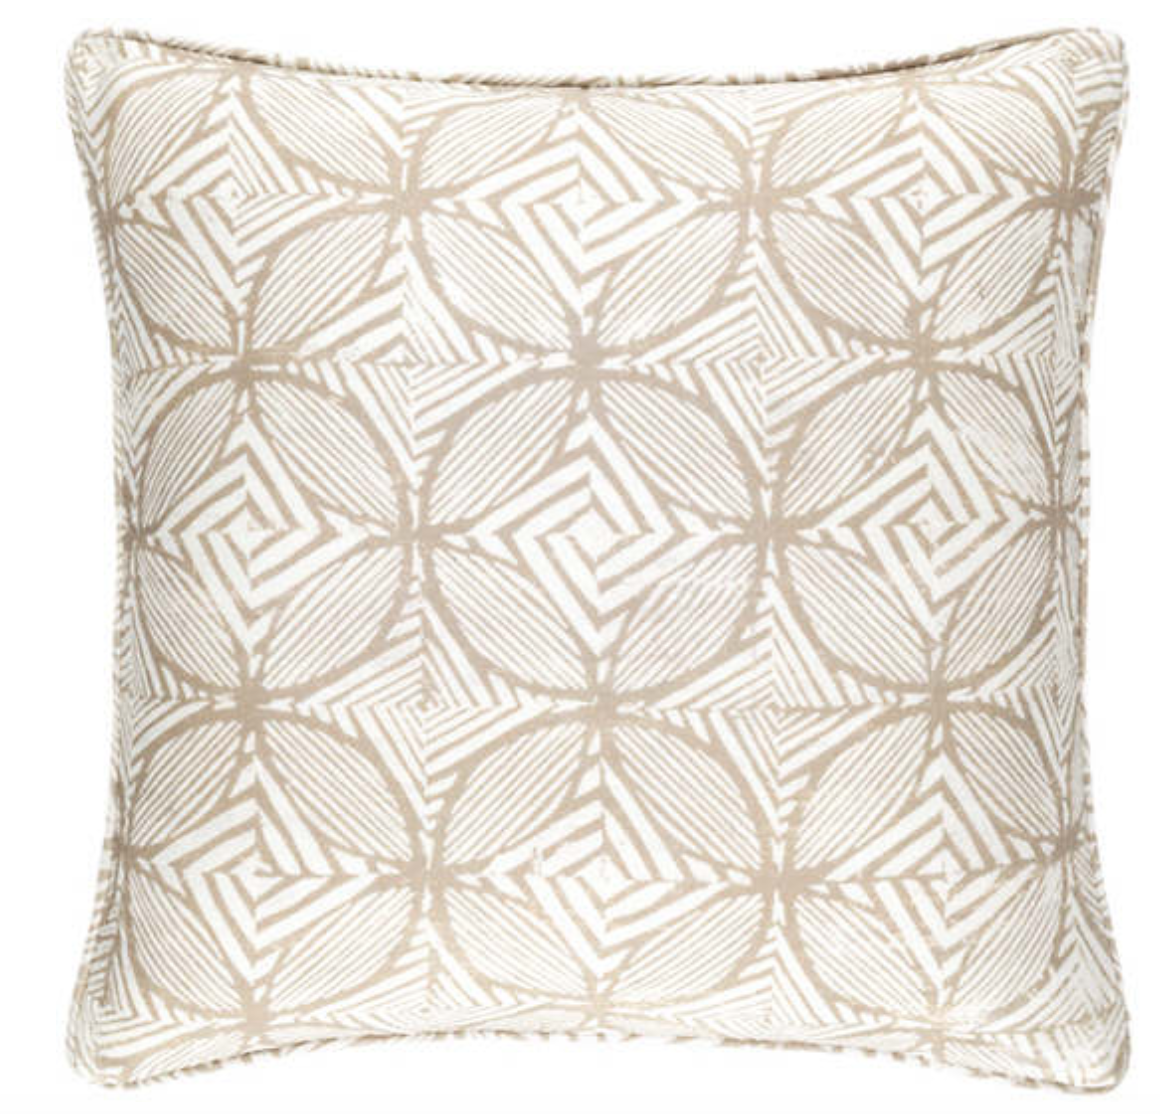 Labyrinth Linen Pillow - Revibe Designs